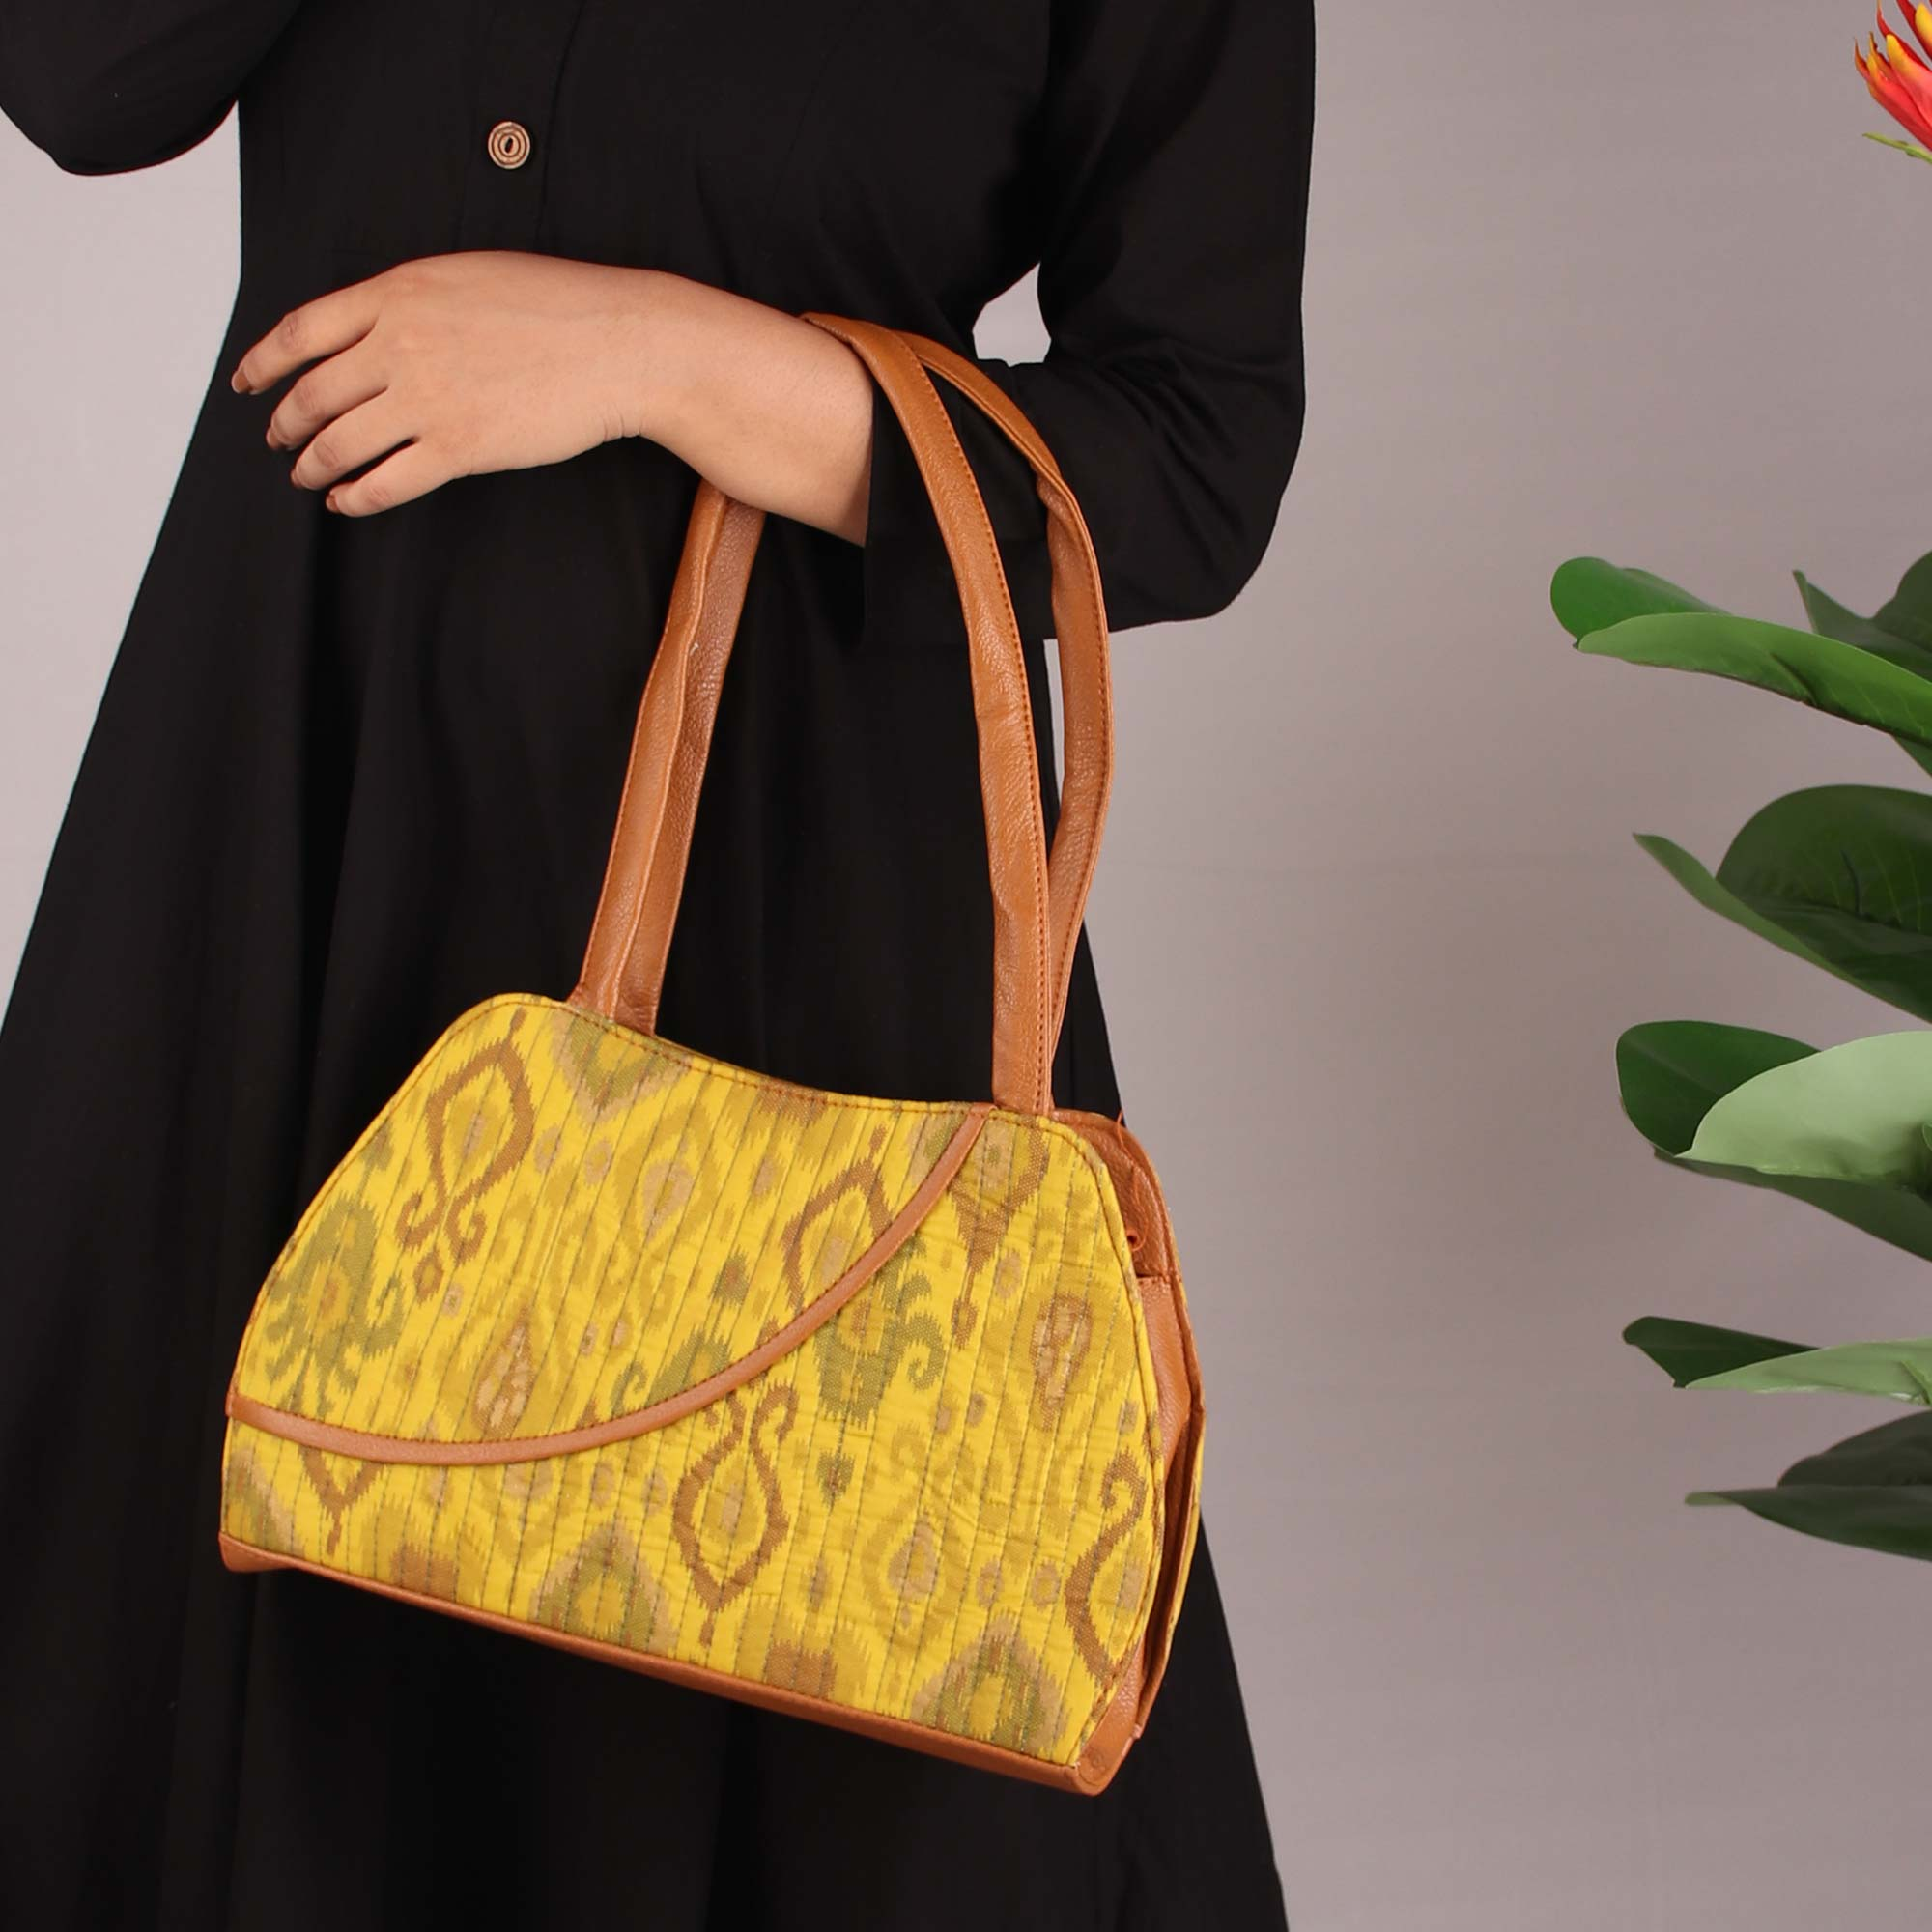 GYPSY SOUL HANDBAG IN YELLOW